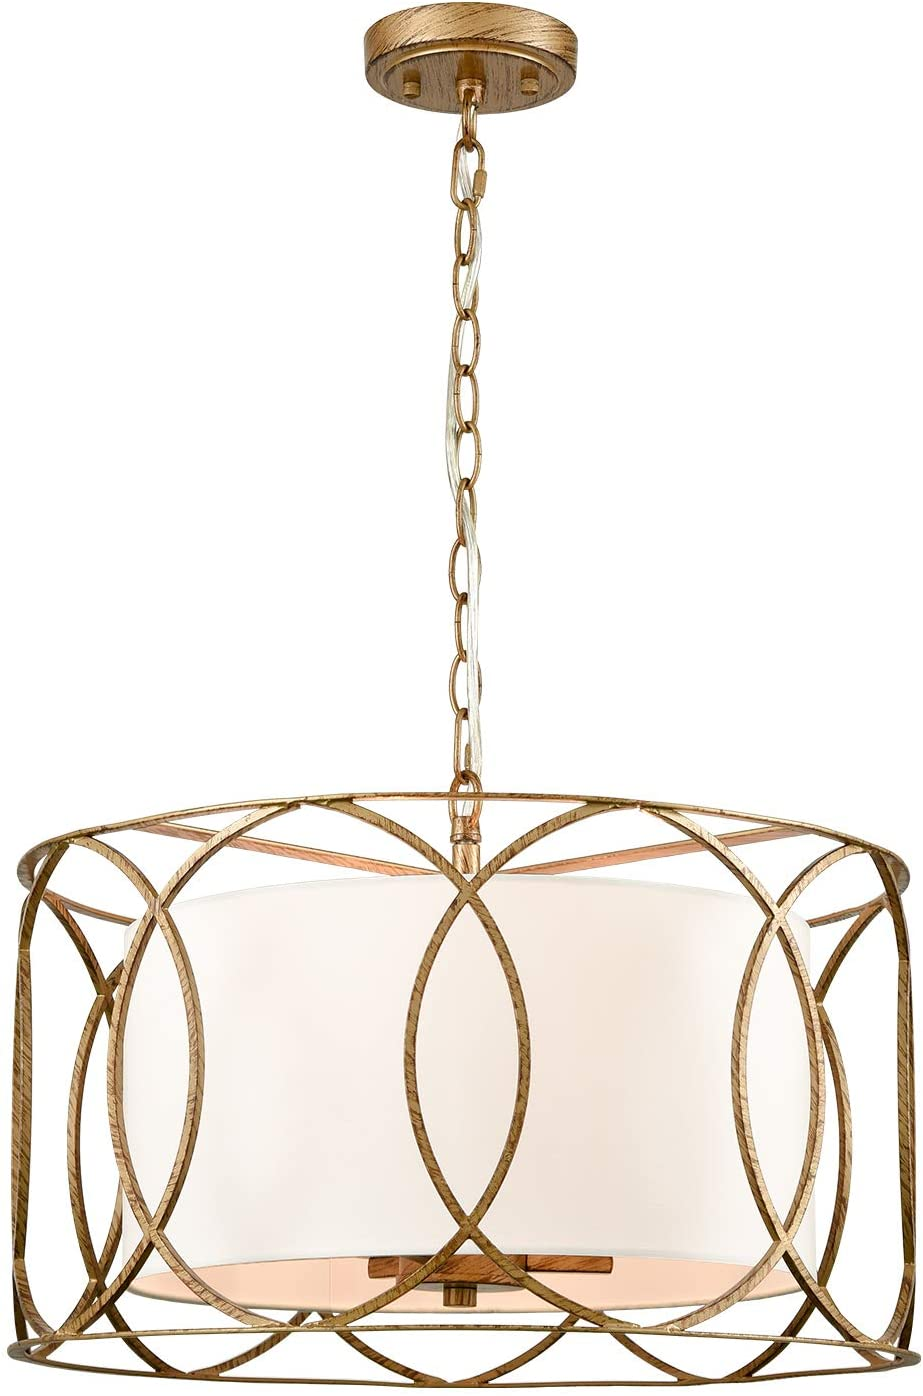 Brass Drum Pendant Be super welcome Light 3-Light Table White Online limited product Dining with Fixture